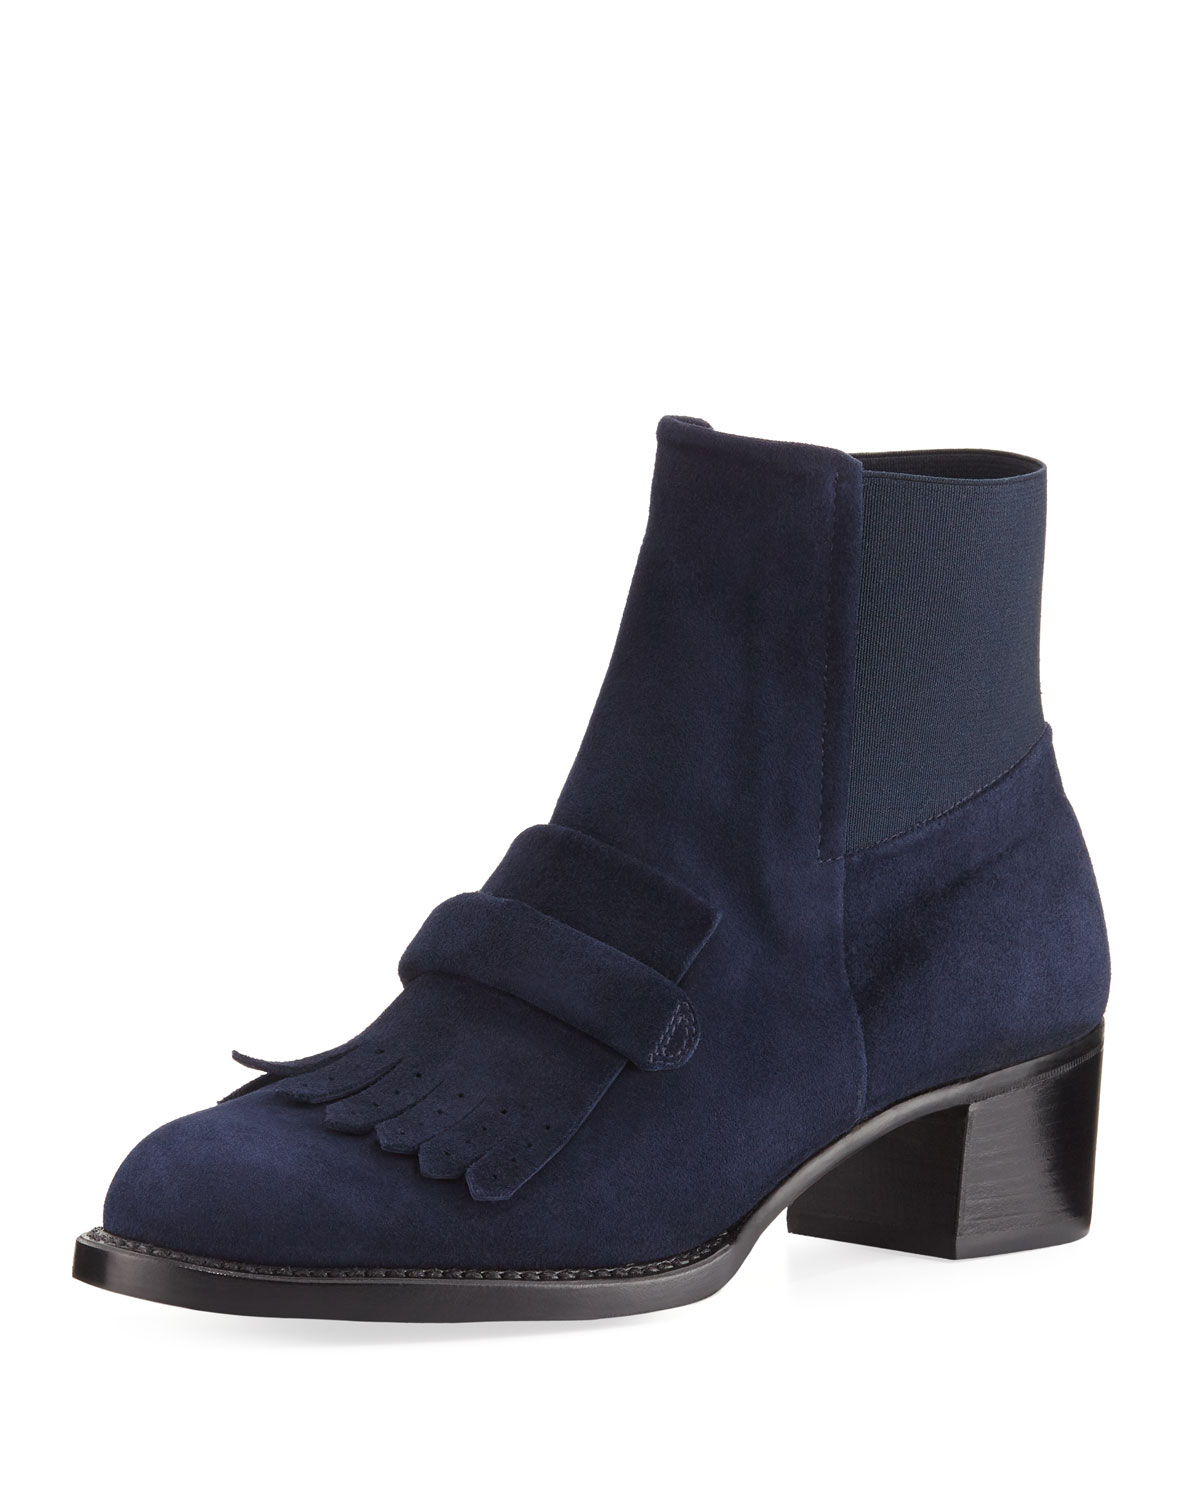 Gravati Suede Round-Toe Ankle Boots for sale very cheap purchase online fEcFt0su